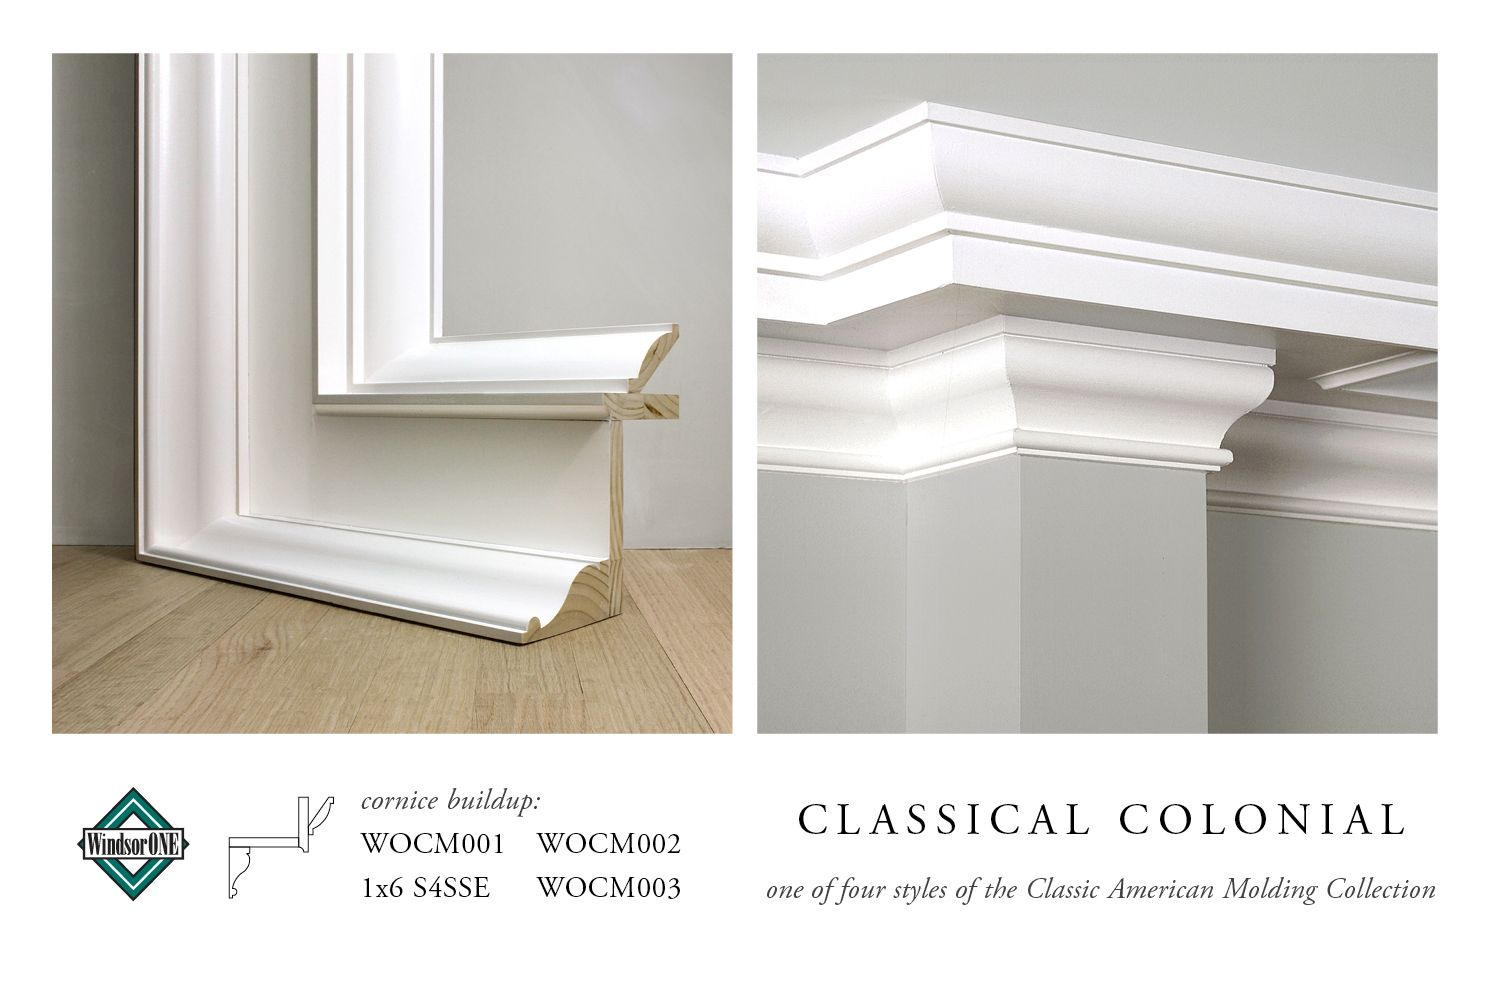 Classical Colonial Moldings 18th Century Style Windsorone Moldings And Trim Crown Molding Diy Crown Molding